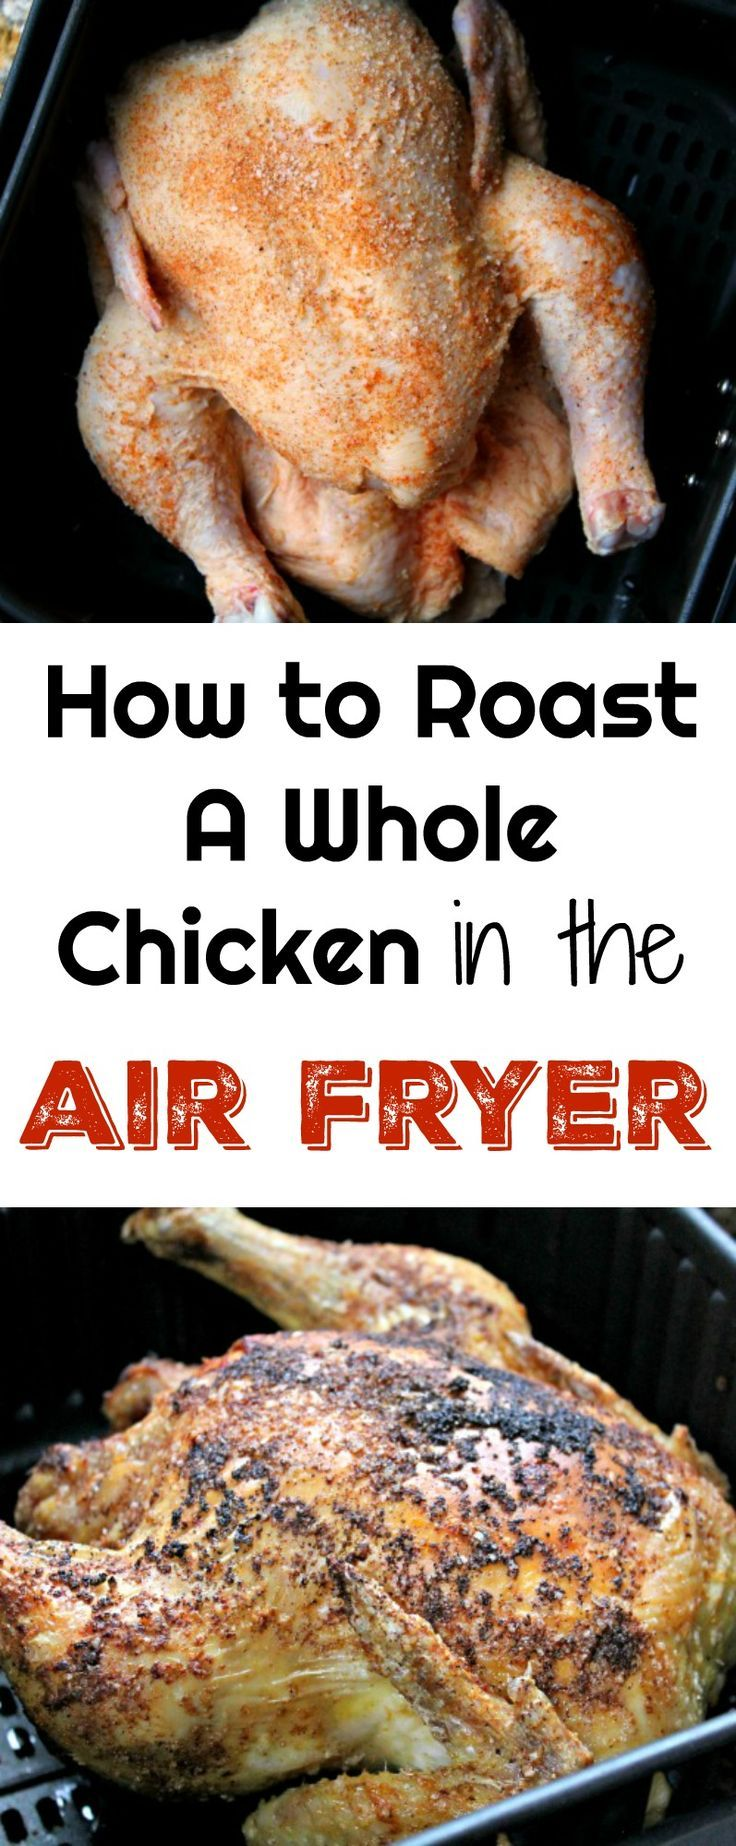 Whole Roasted Chicken in the Air Fryer Recipe Stuffed